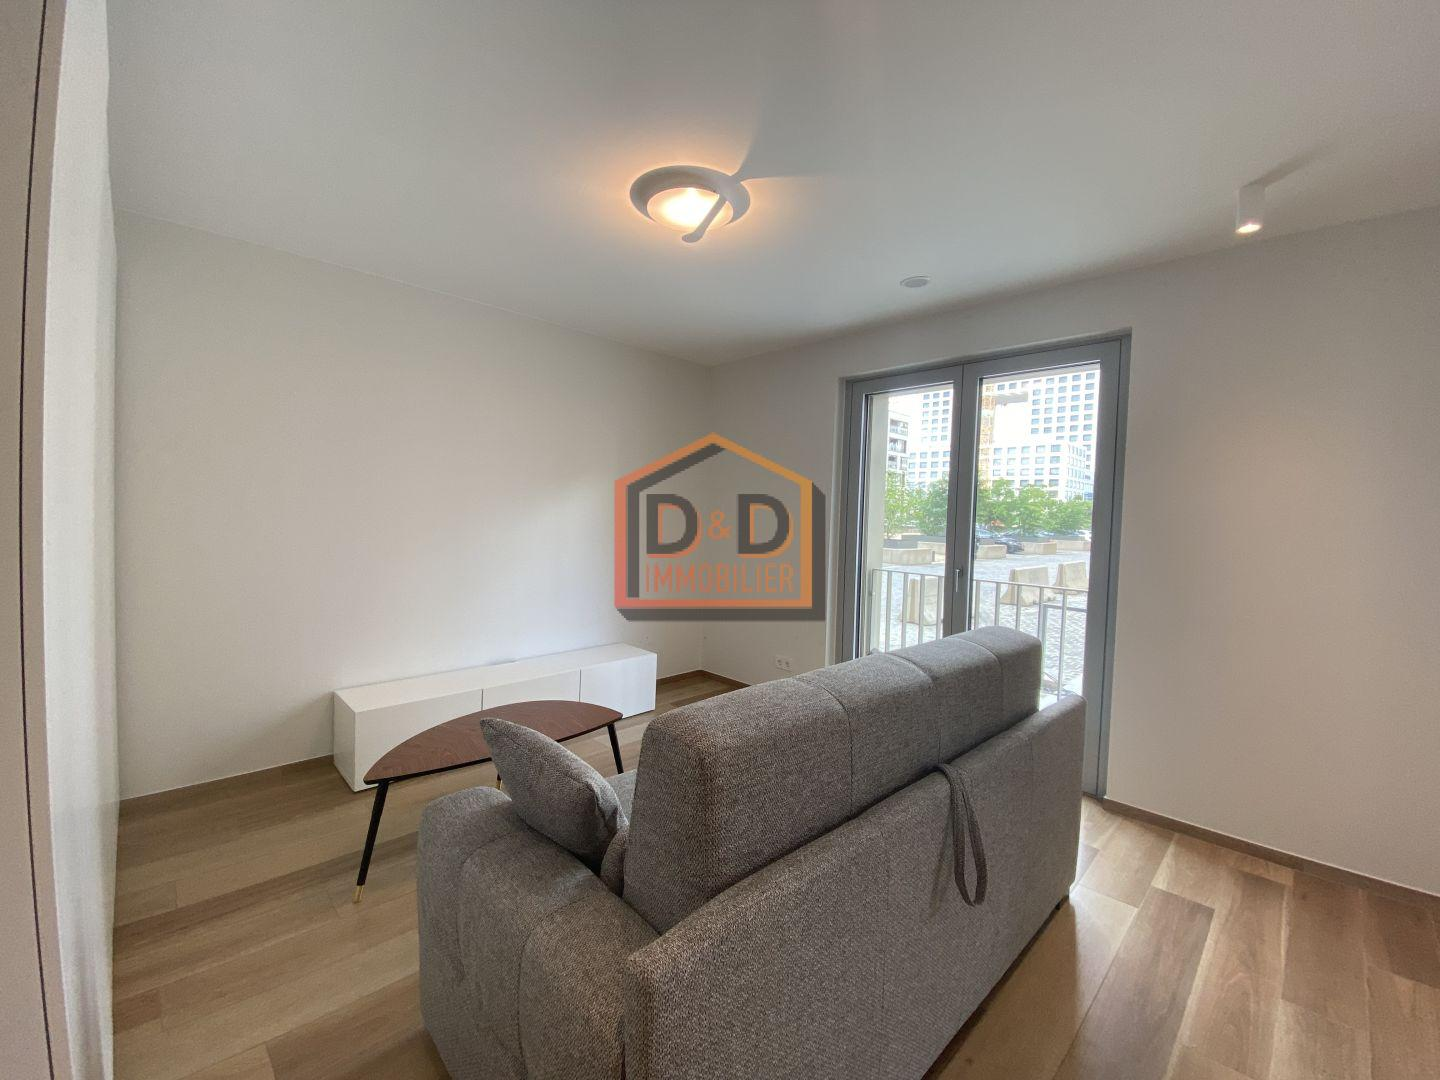 Appartement à Luxembourg-Gasperich, 35 m², 1 350 €/mois